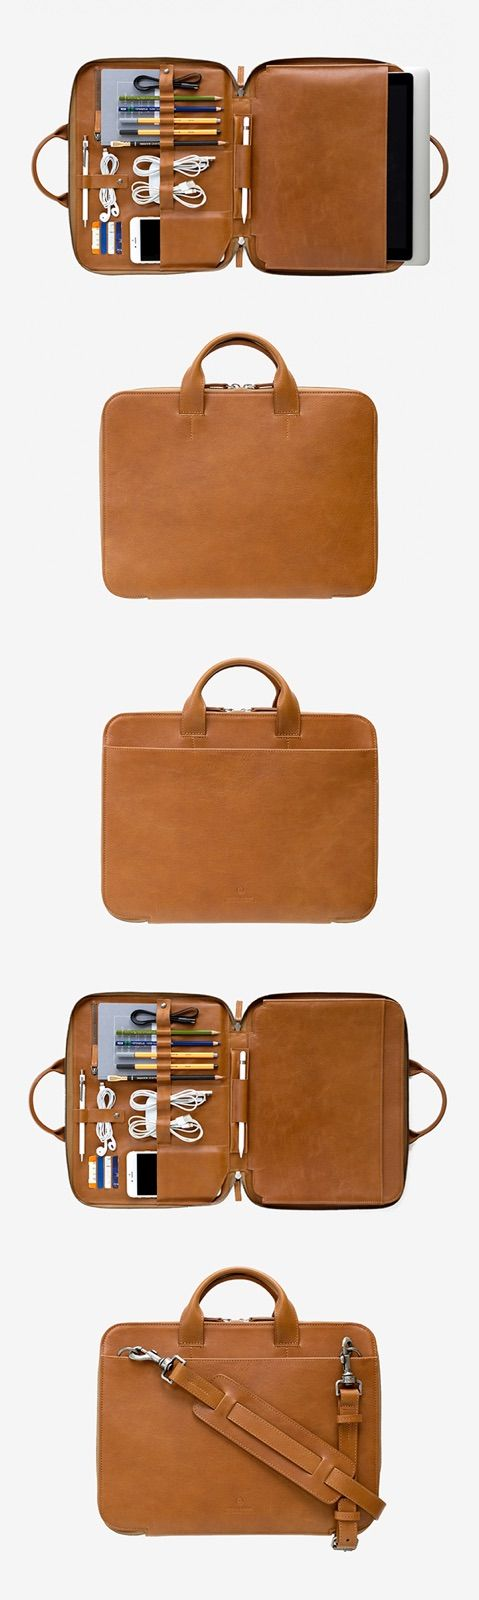 doctor briefcase photo - 1